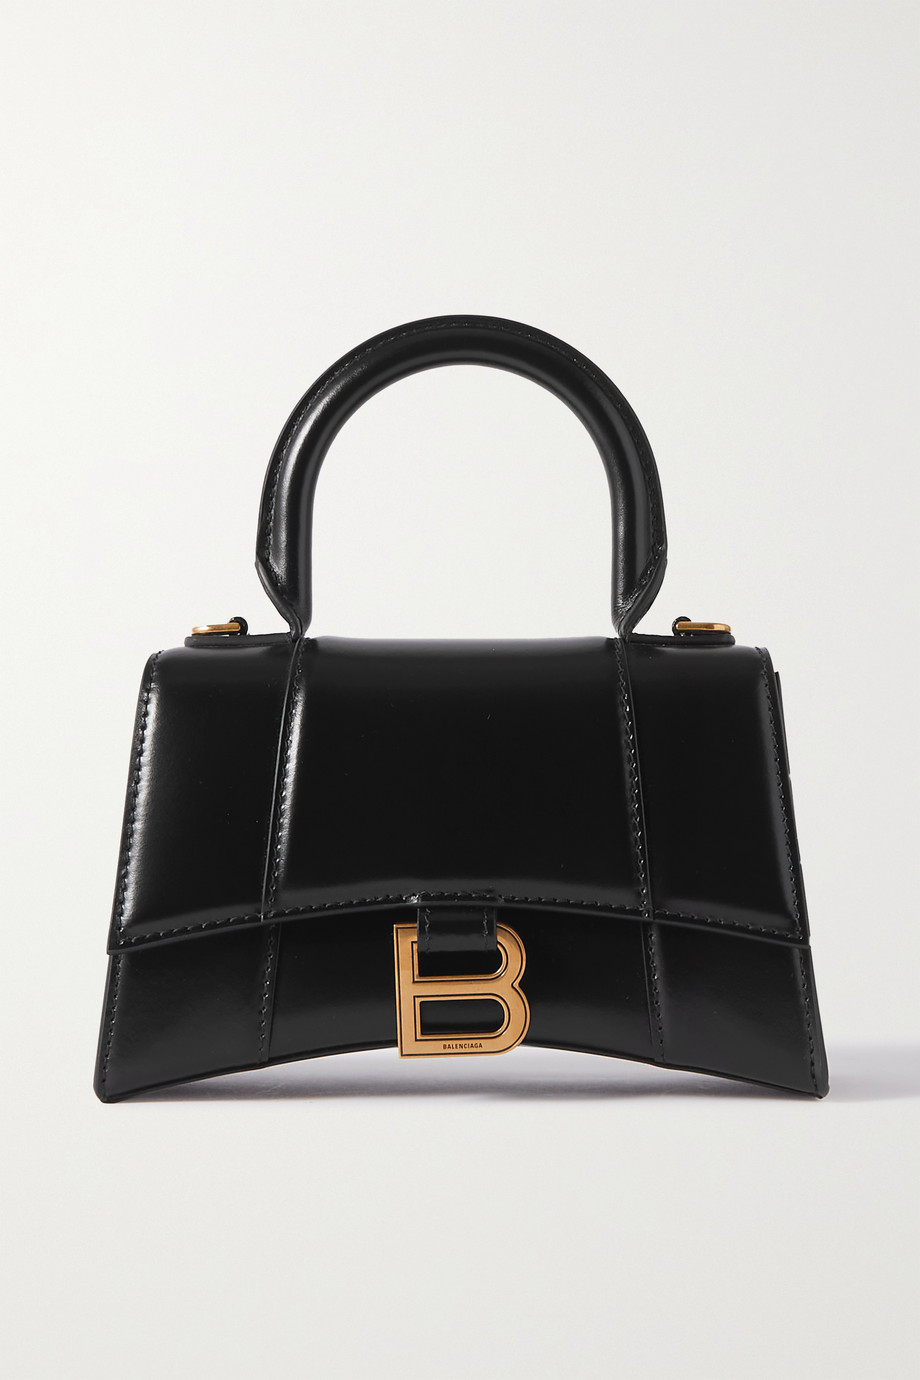 Balenciaga Hourglass XS leather tote